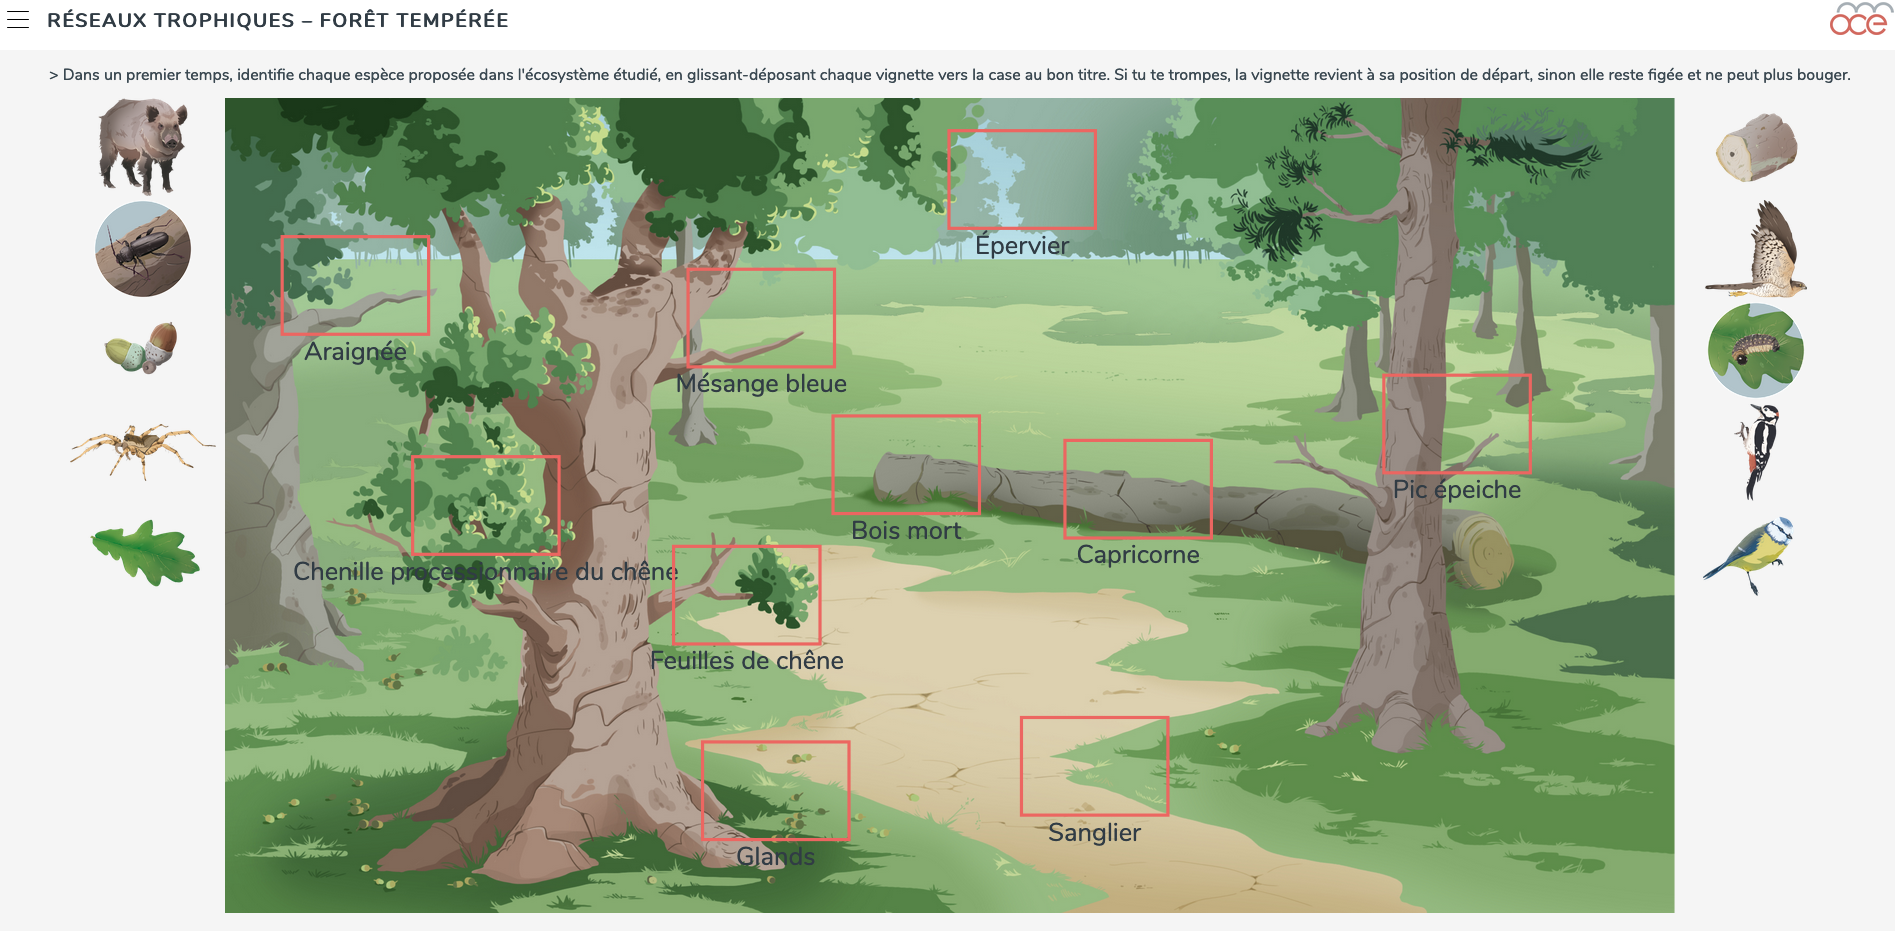 forest food web image